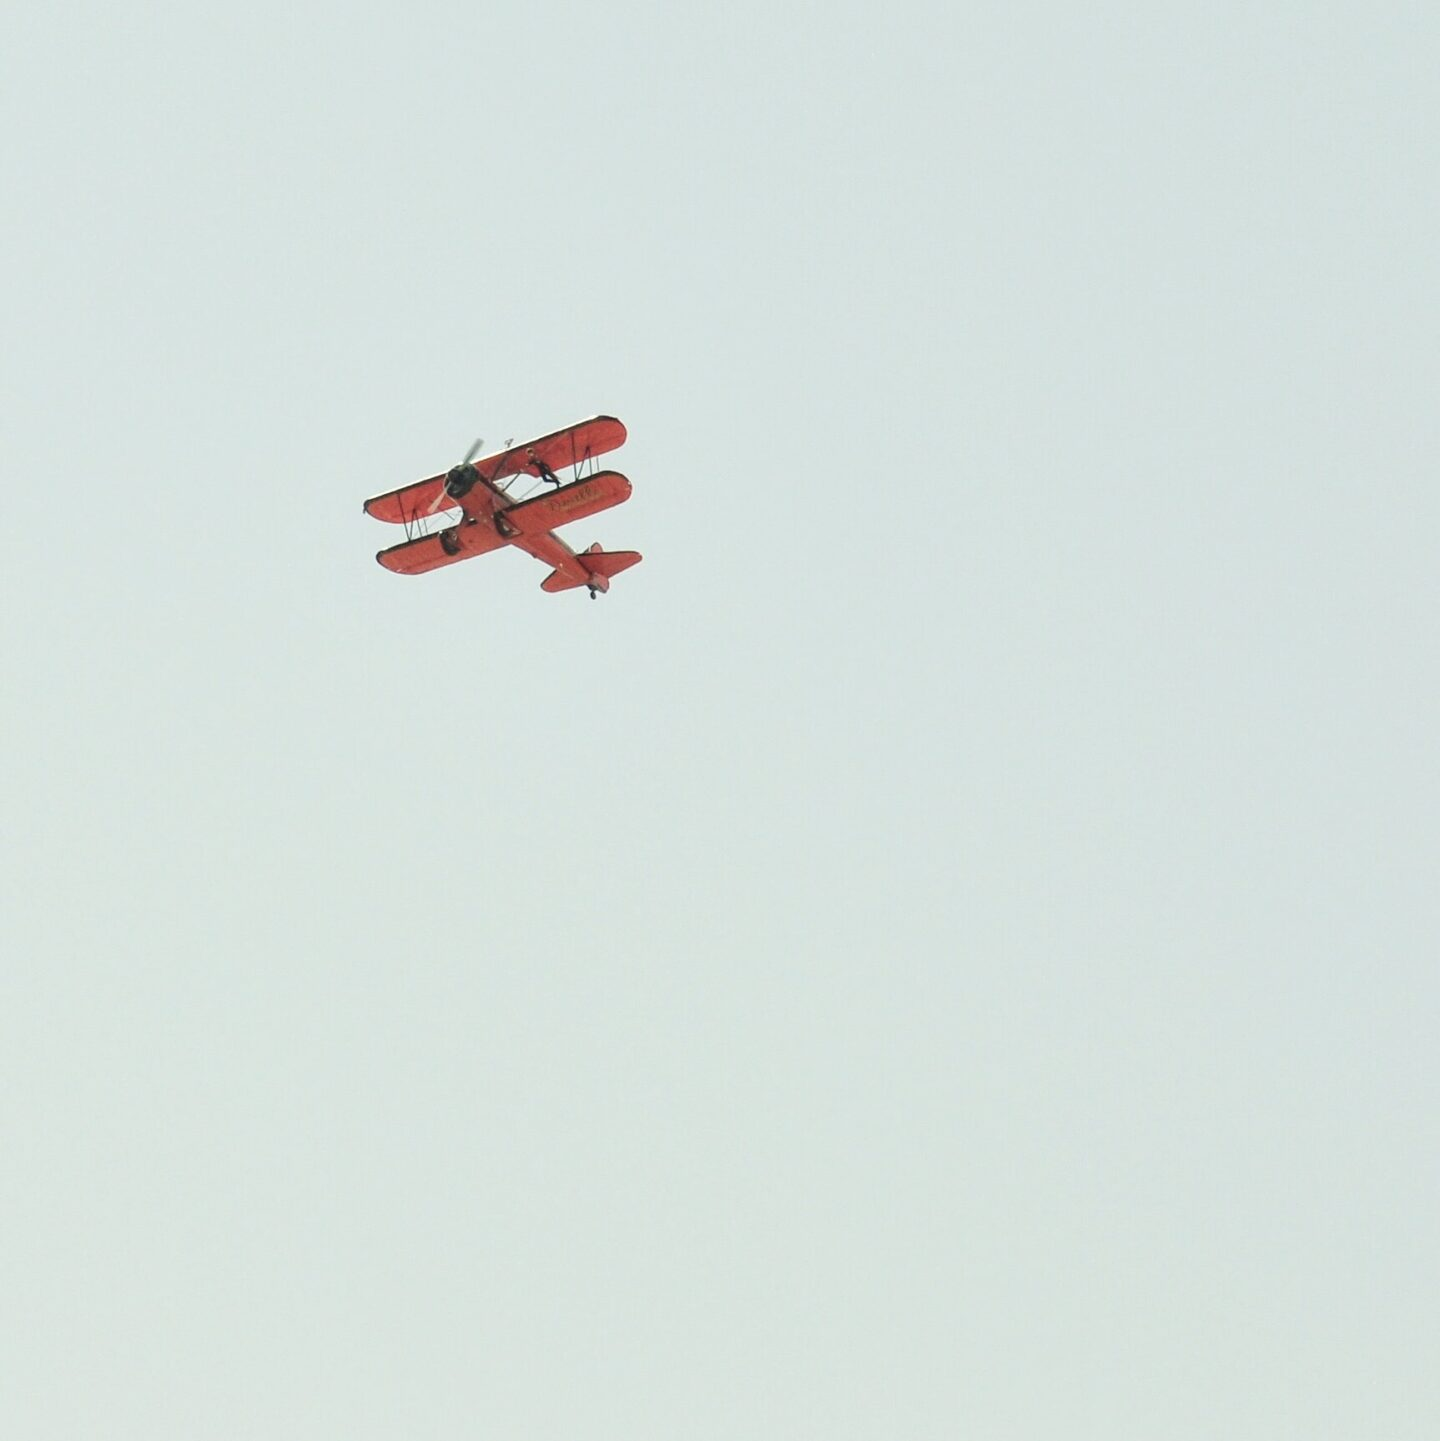 Not for the faint of heart! Wing-walking takes guts but is a daredevils must have on a bucket list